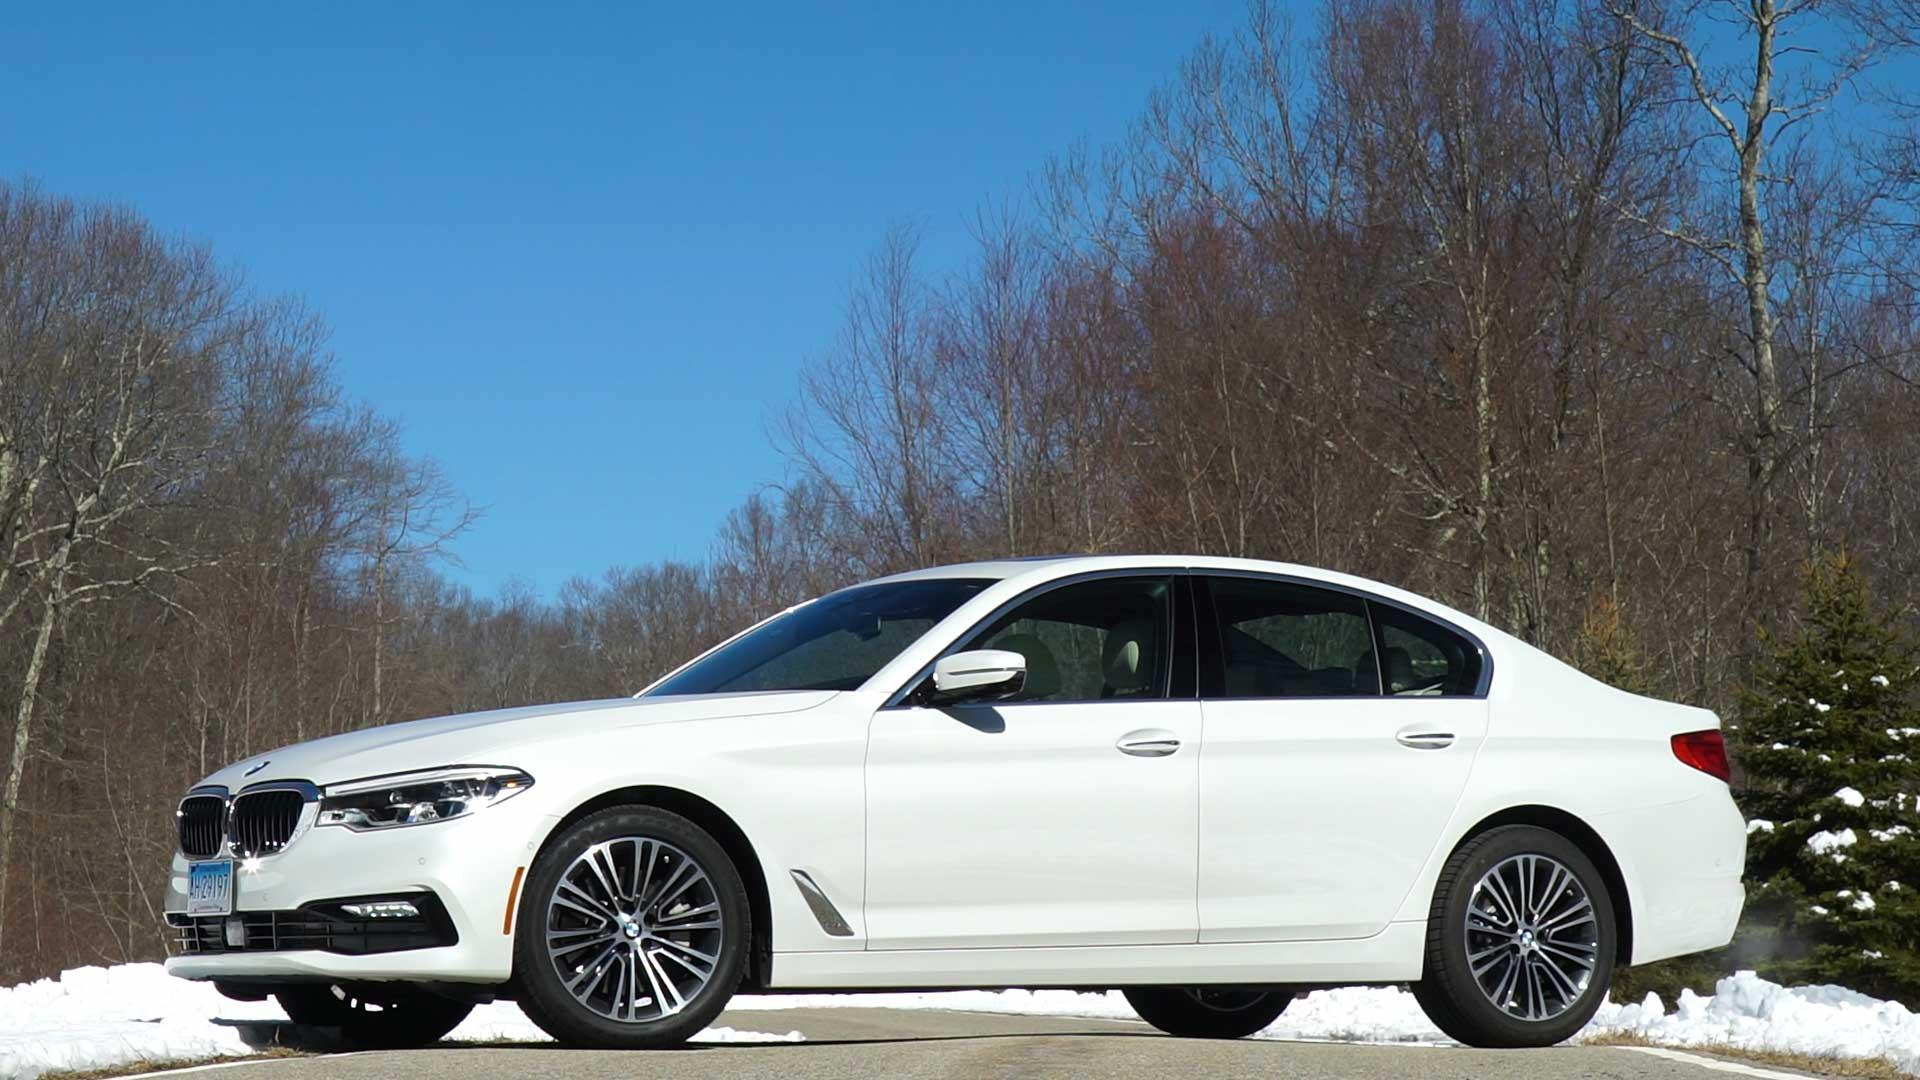 2017 bmw 5 series first drive review consumer reports rh consumerreports org bmw e39 530d user manual bmw 530d gt user manual